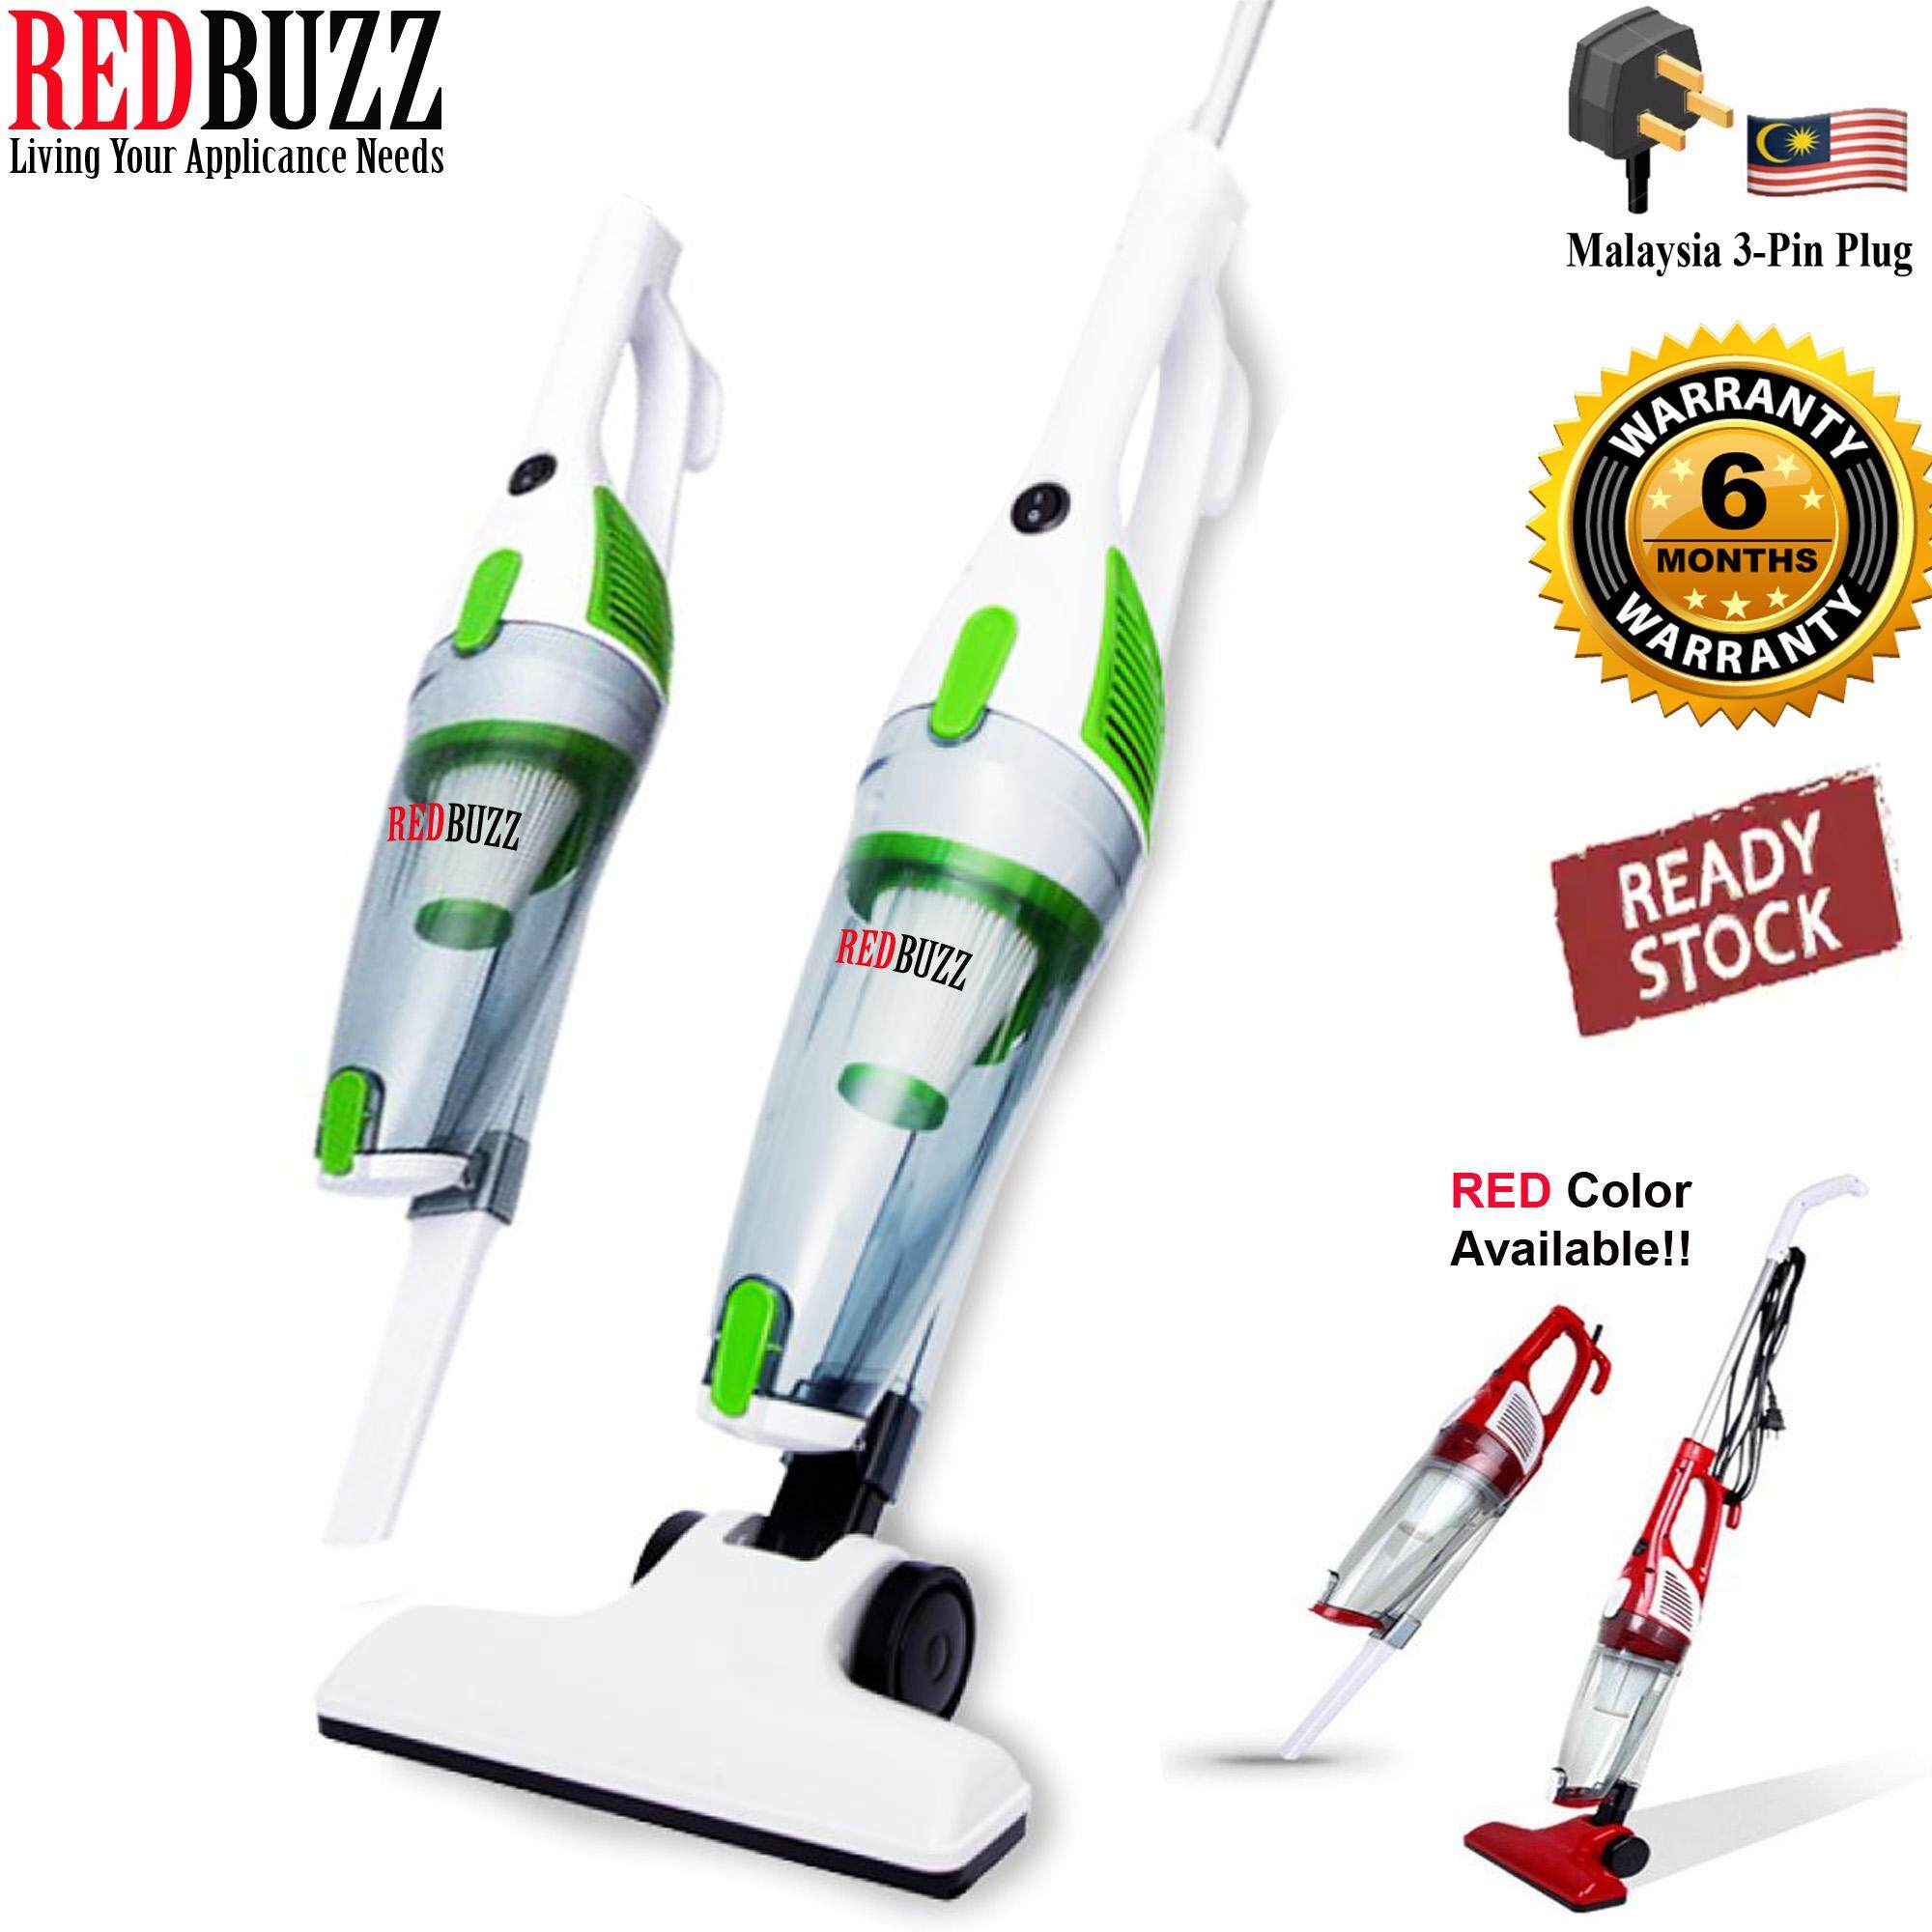 REDBUZZ 2in1 Powerful Suction 600W S1007 Portable Handheld Vacuum Cleaner (Green) + 3 Pcs Nozzle Brush (Optional)